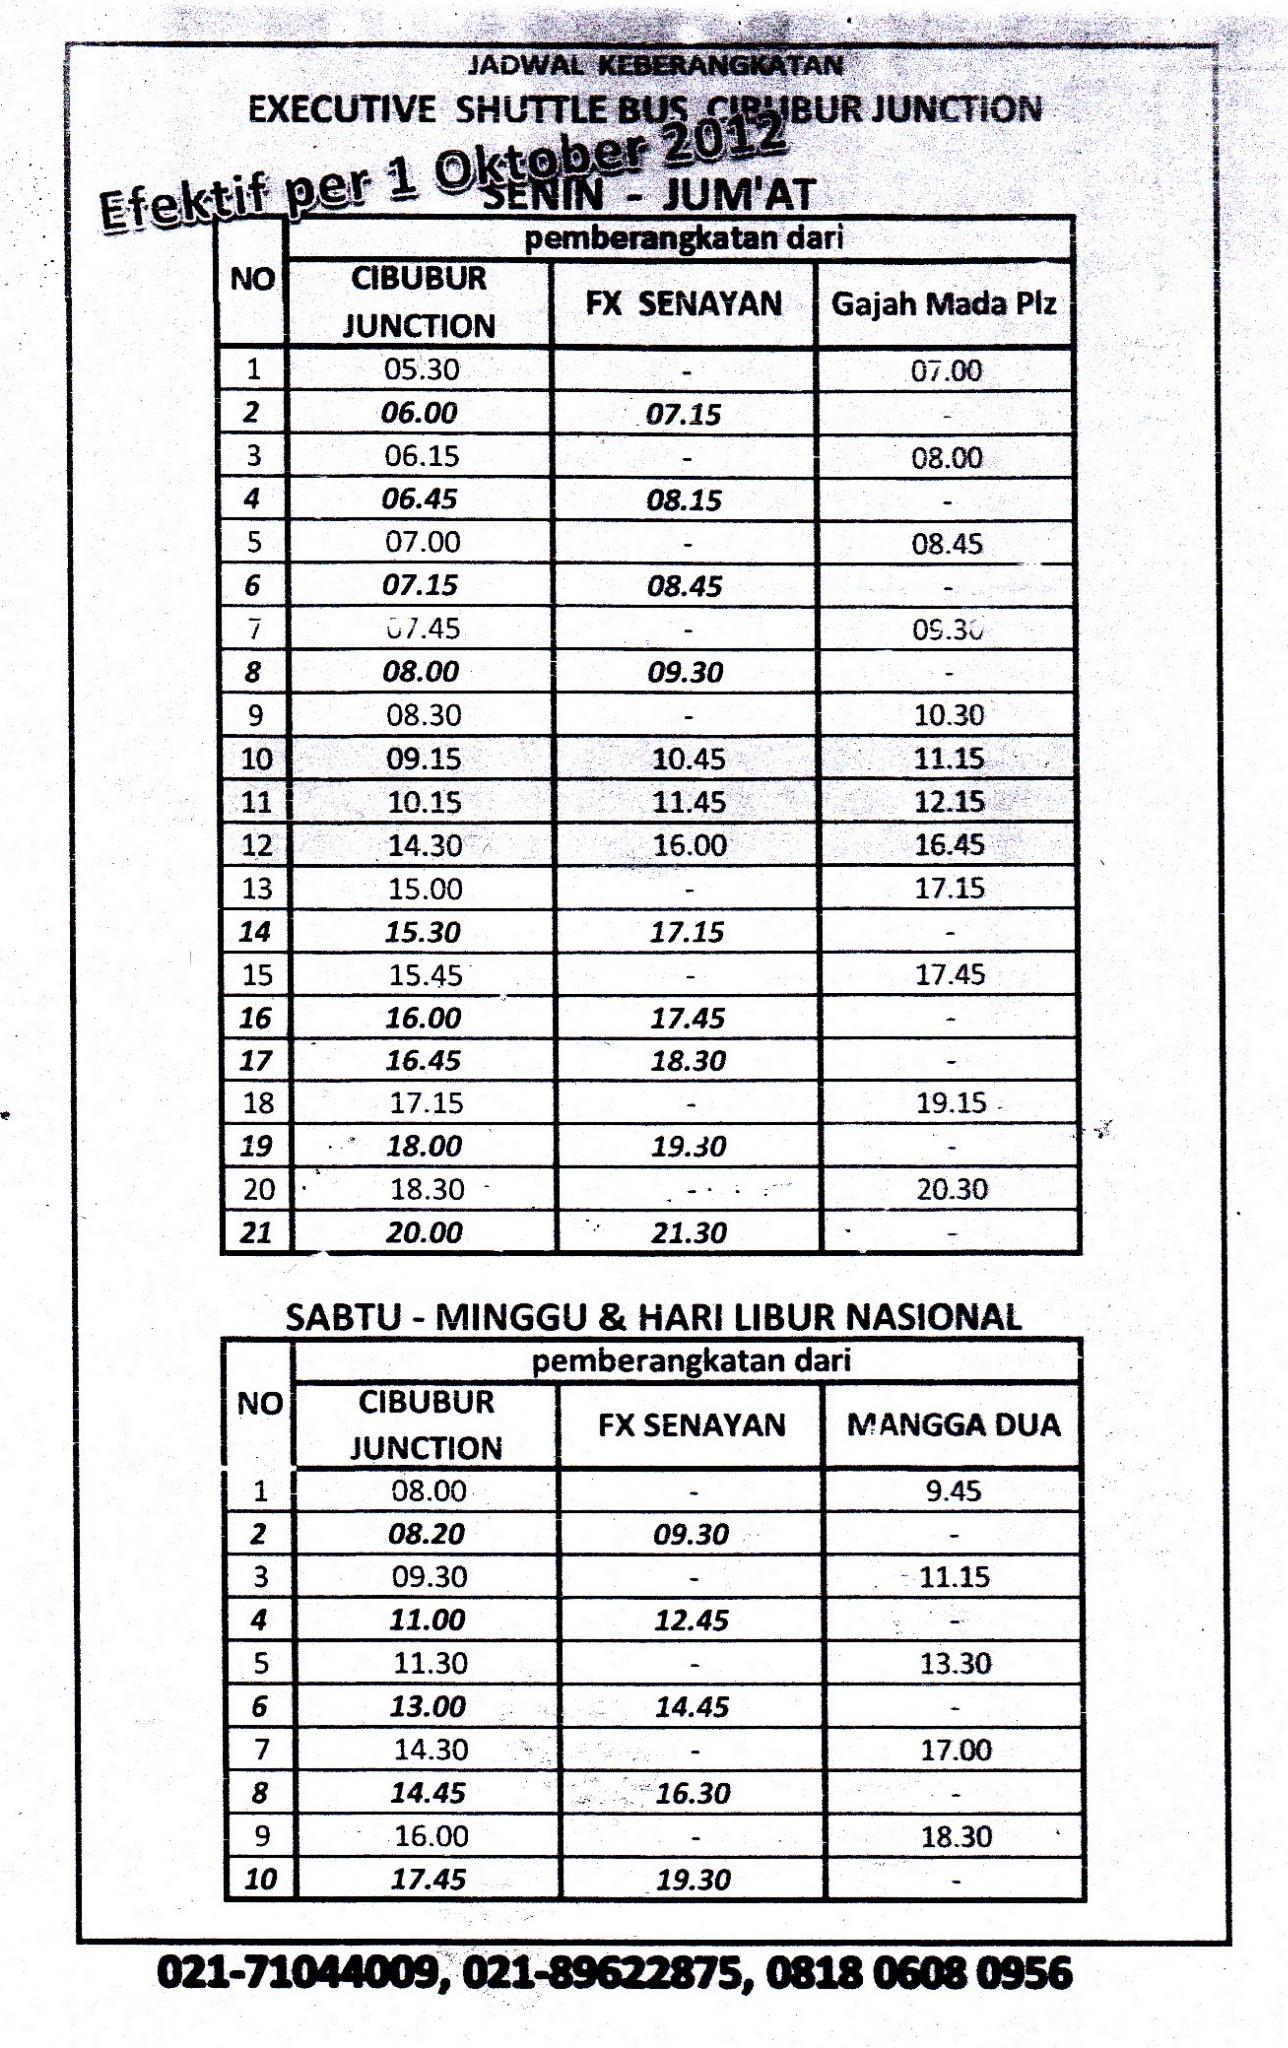 Jadwal Executive Shuttle Bus Cibubur Junction http://t.co/F4aBdp8n